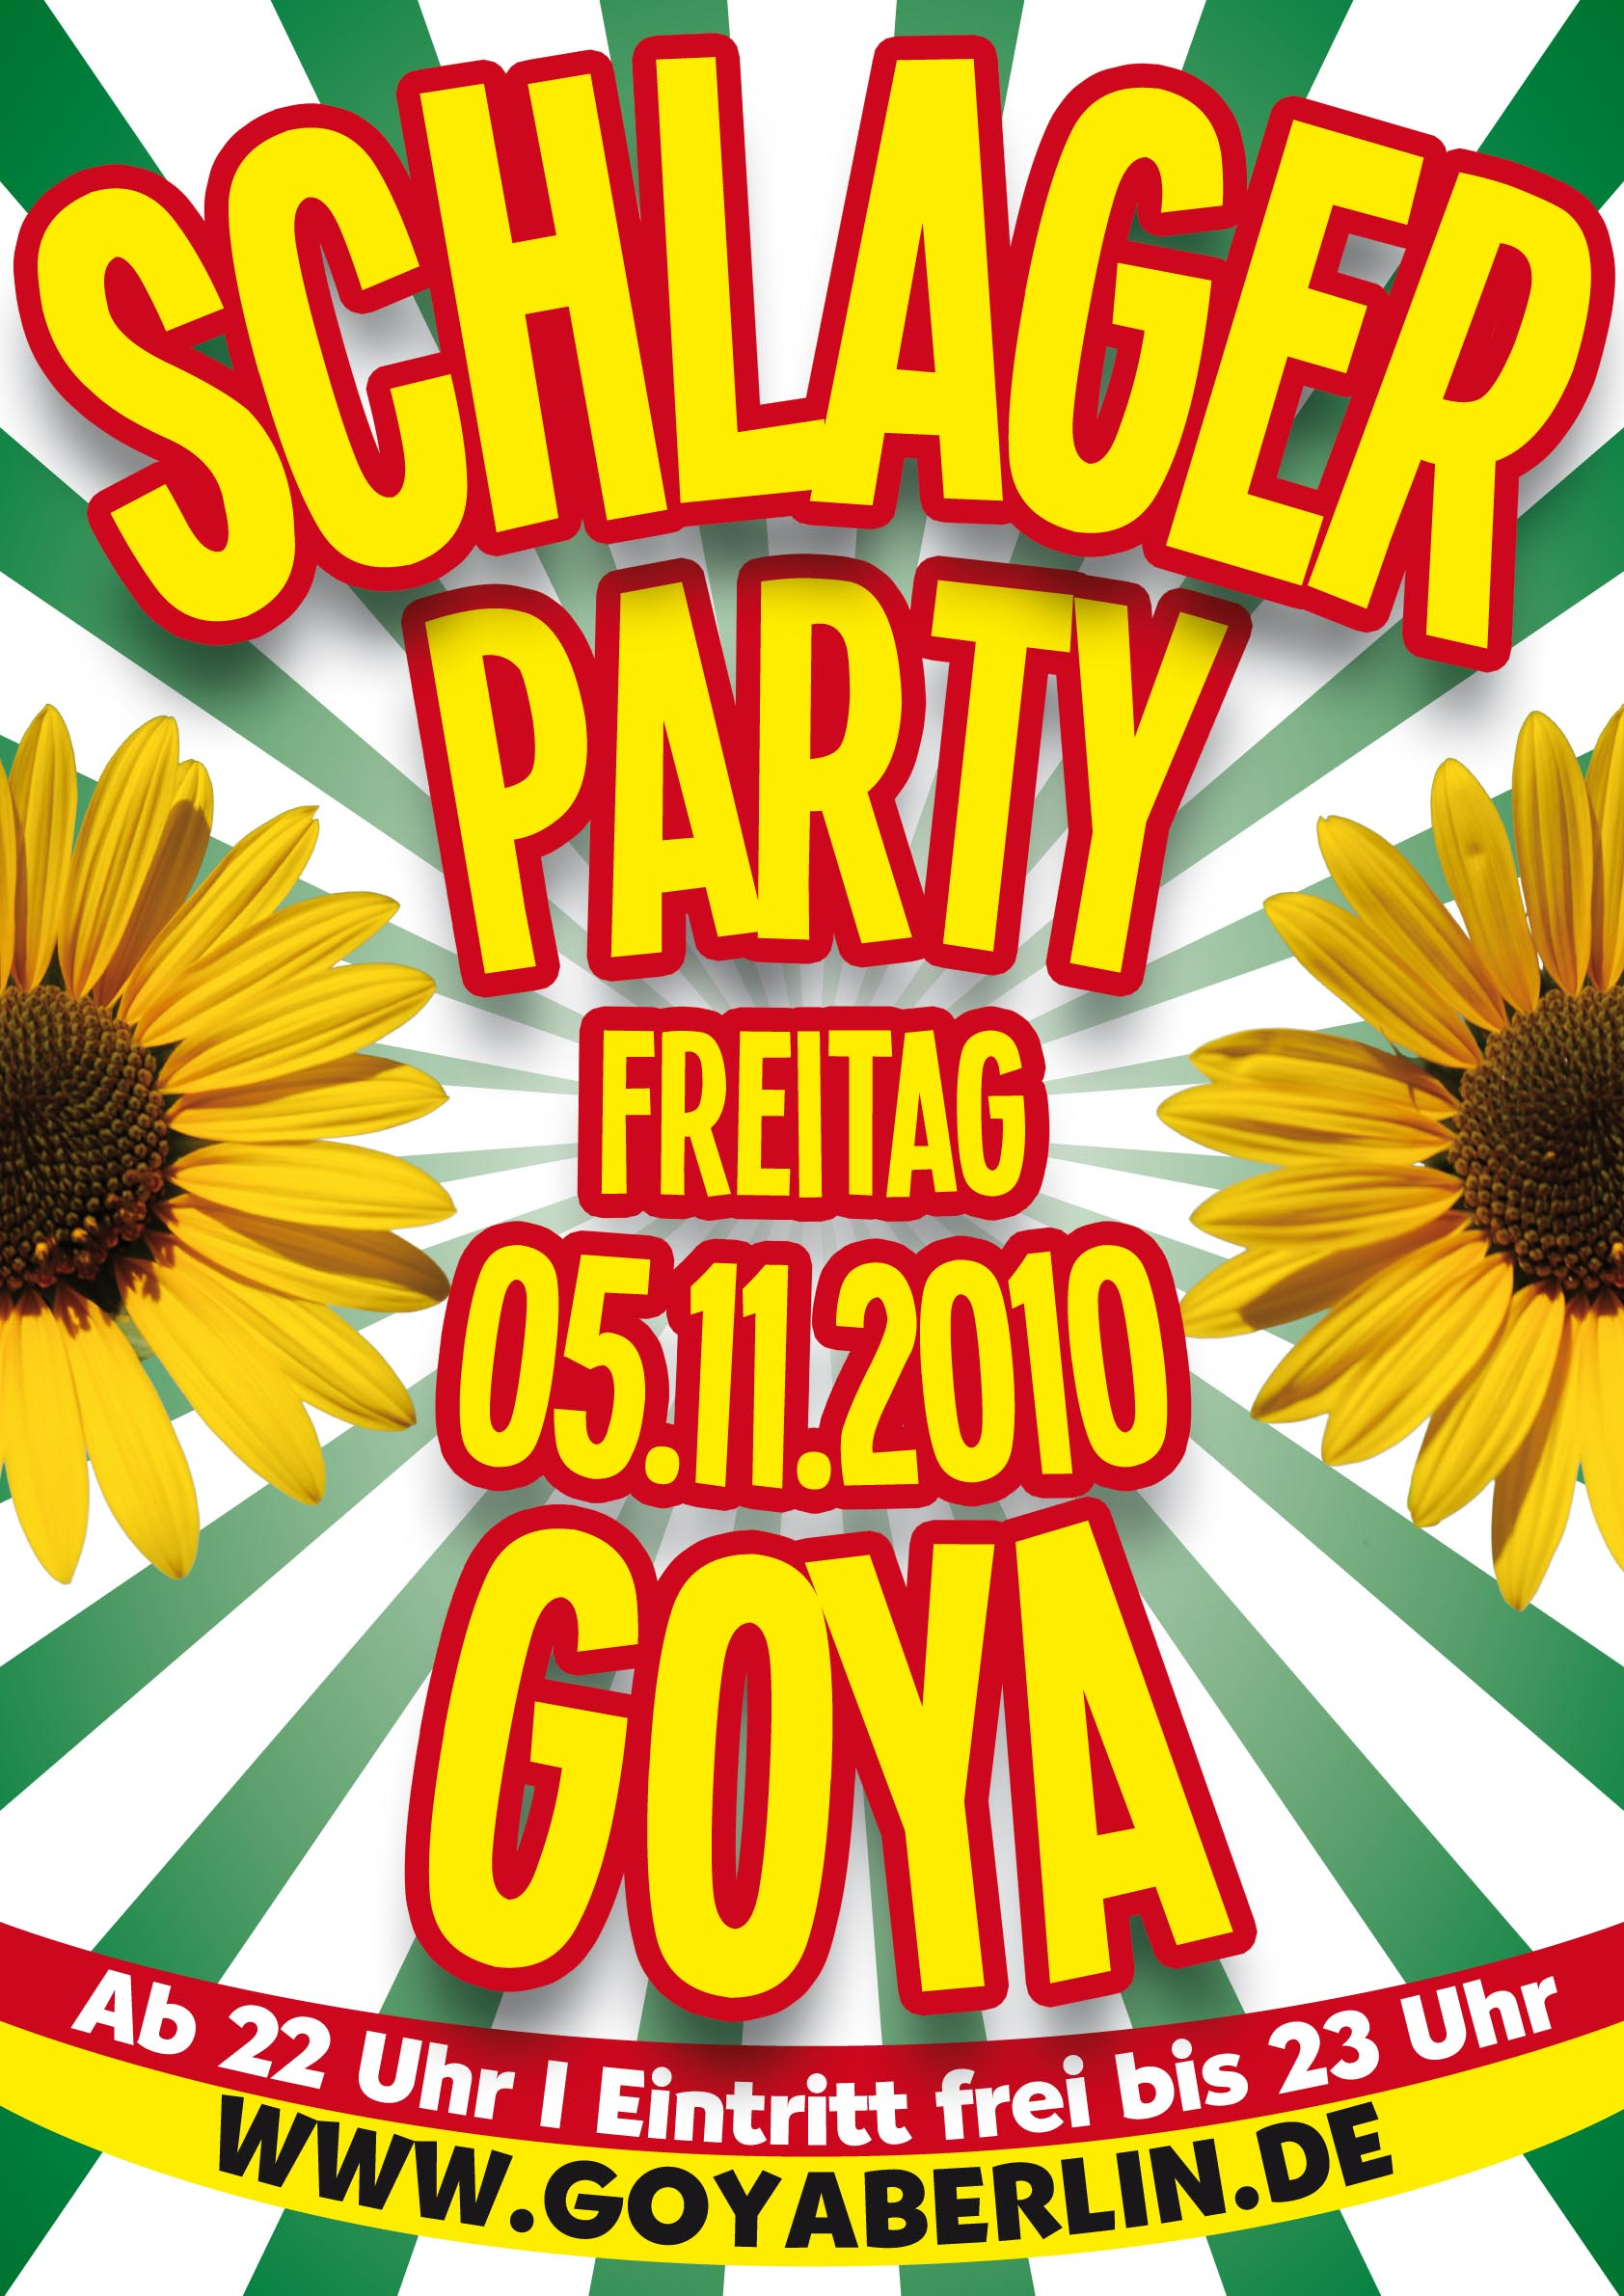 Goya berlin single party